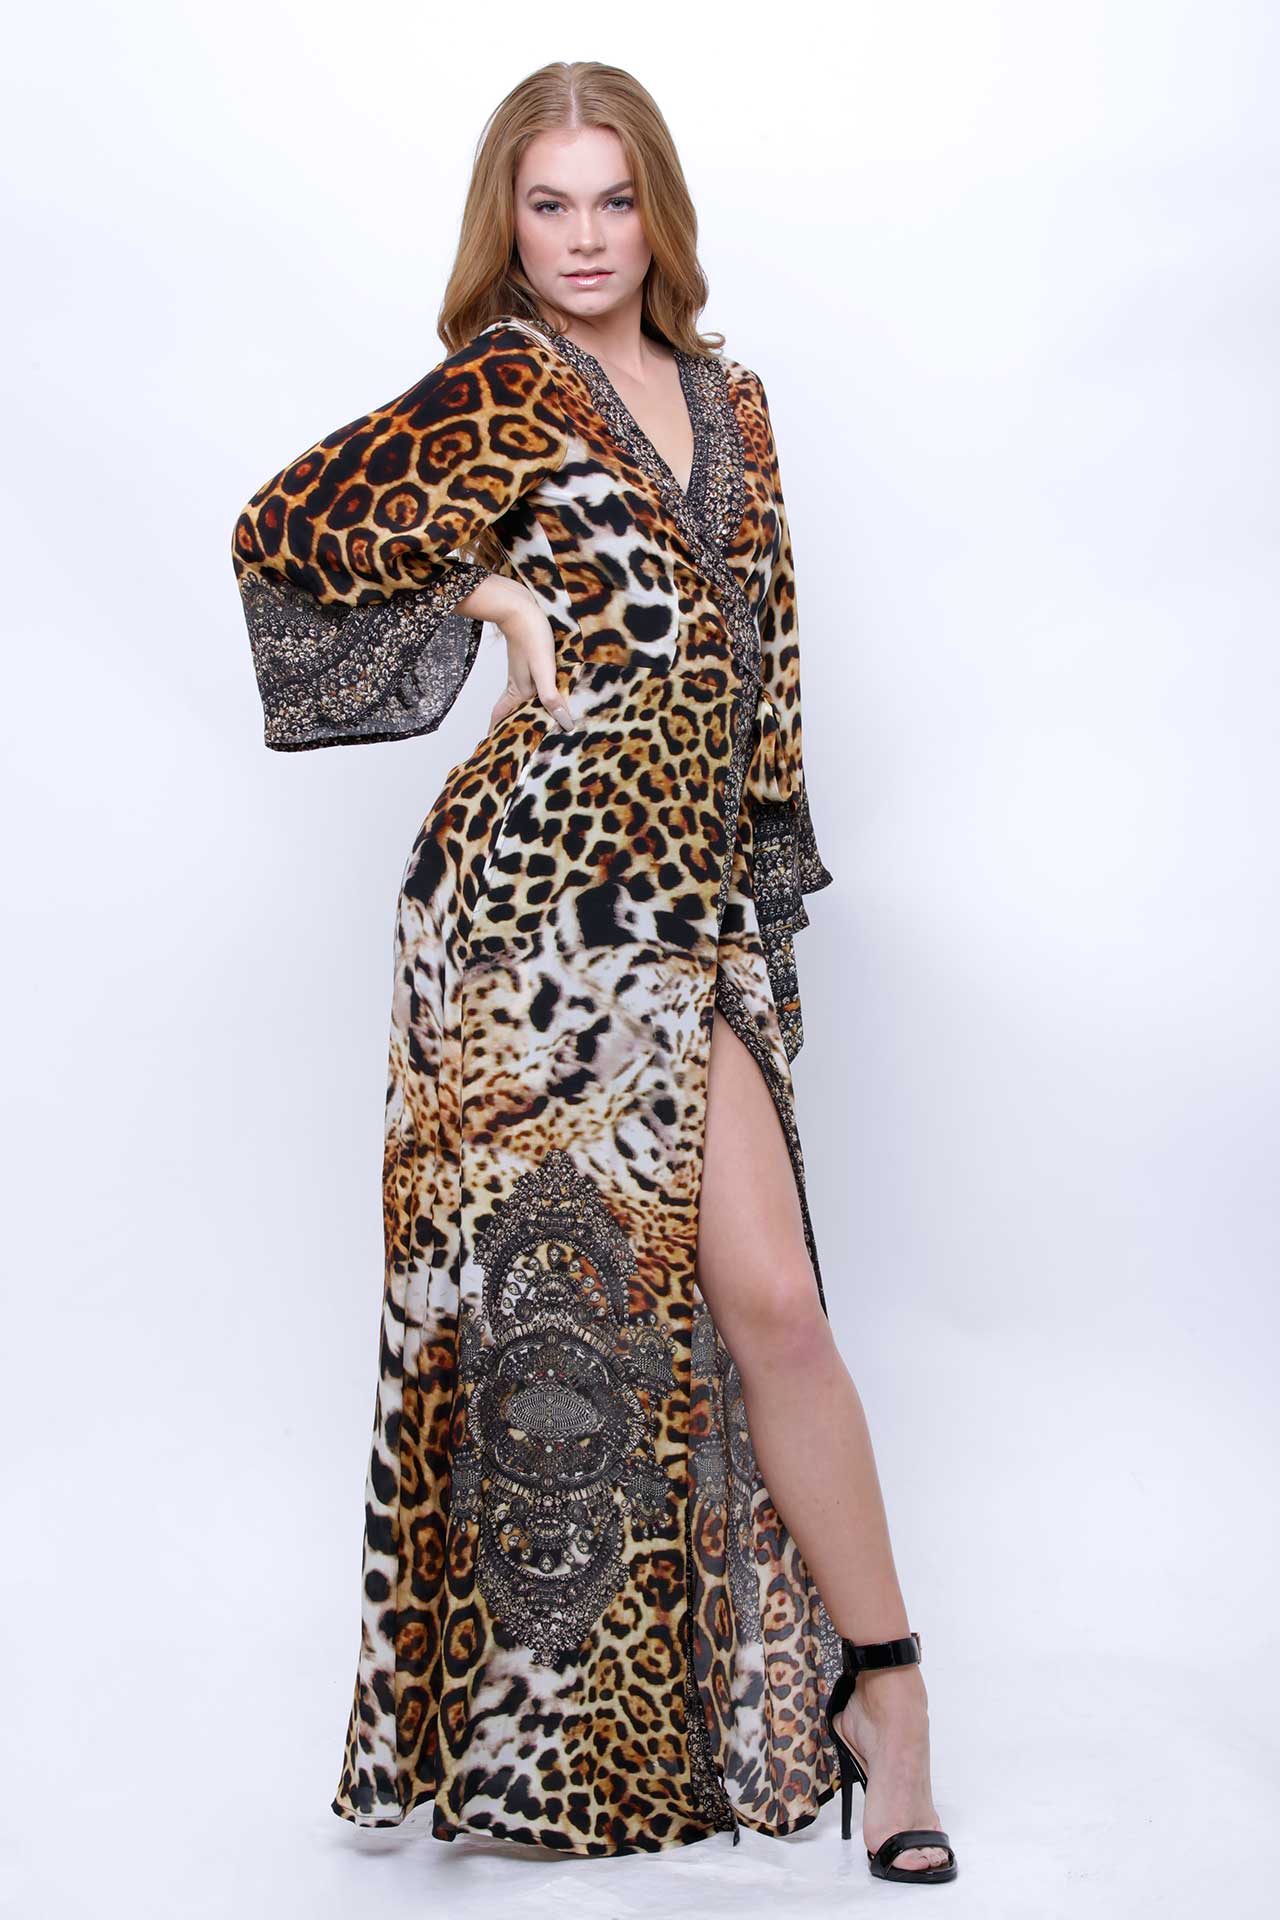 Leopard Print Long Sleeve Wrap Dress as seen on Kyle Richards in The Real Housewives of Beverly Hills